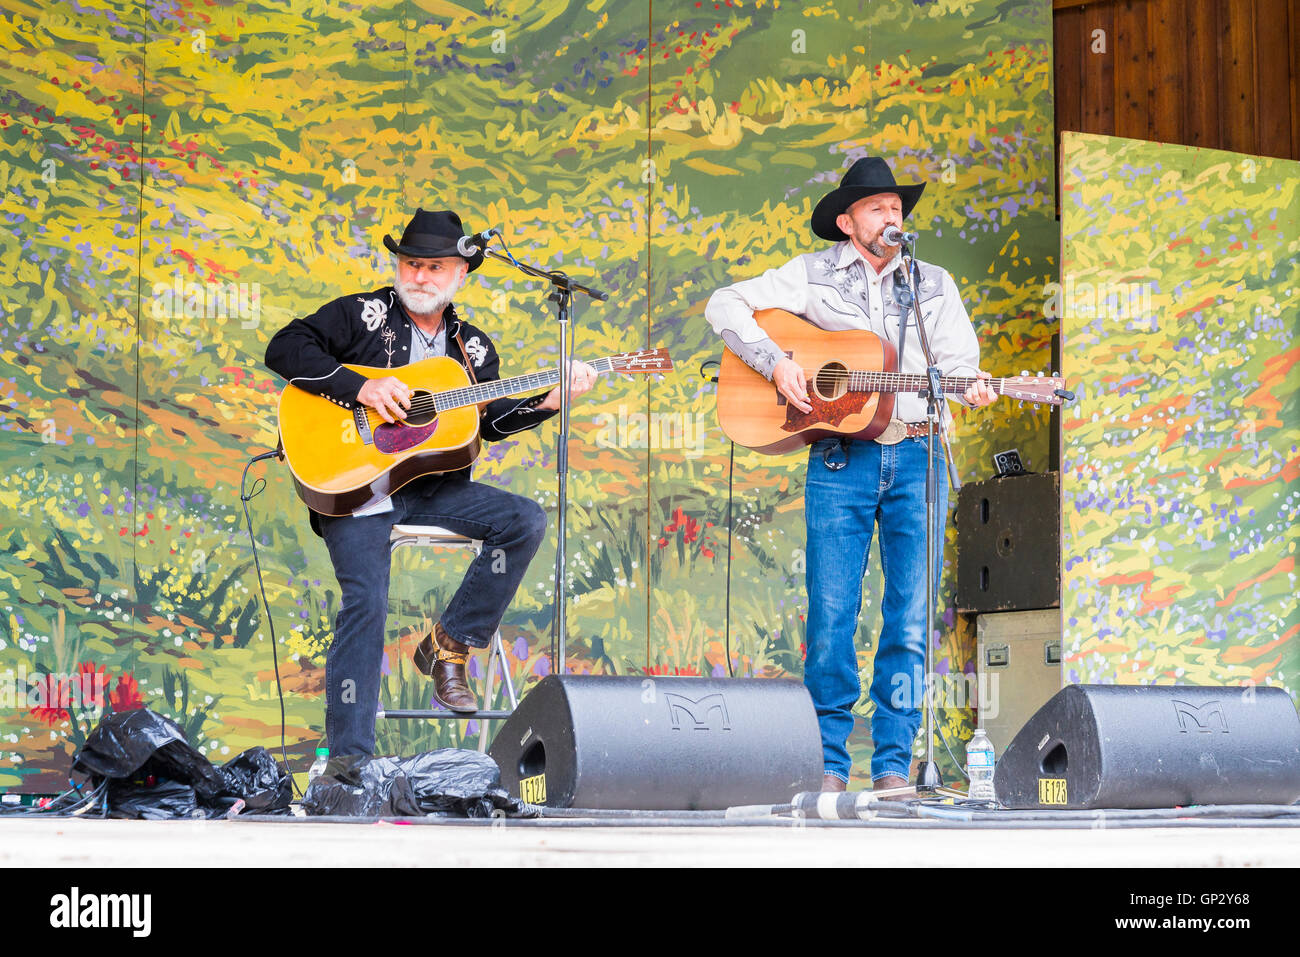 Ridley Bent performing at Canmore Folk Music Festival, Canmore, Alberta, Canada - Stock Image